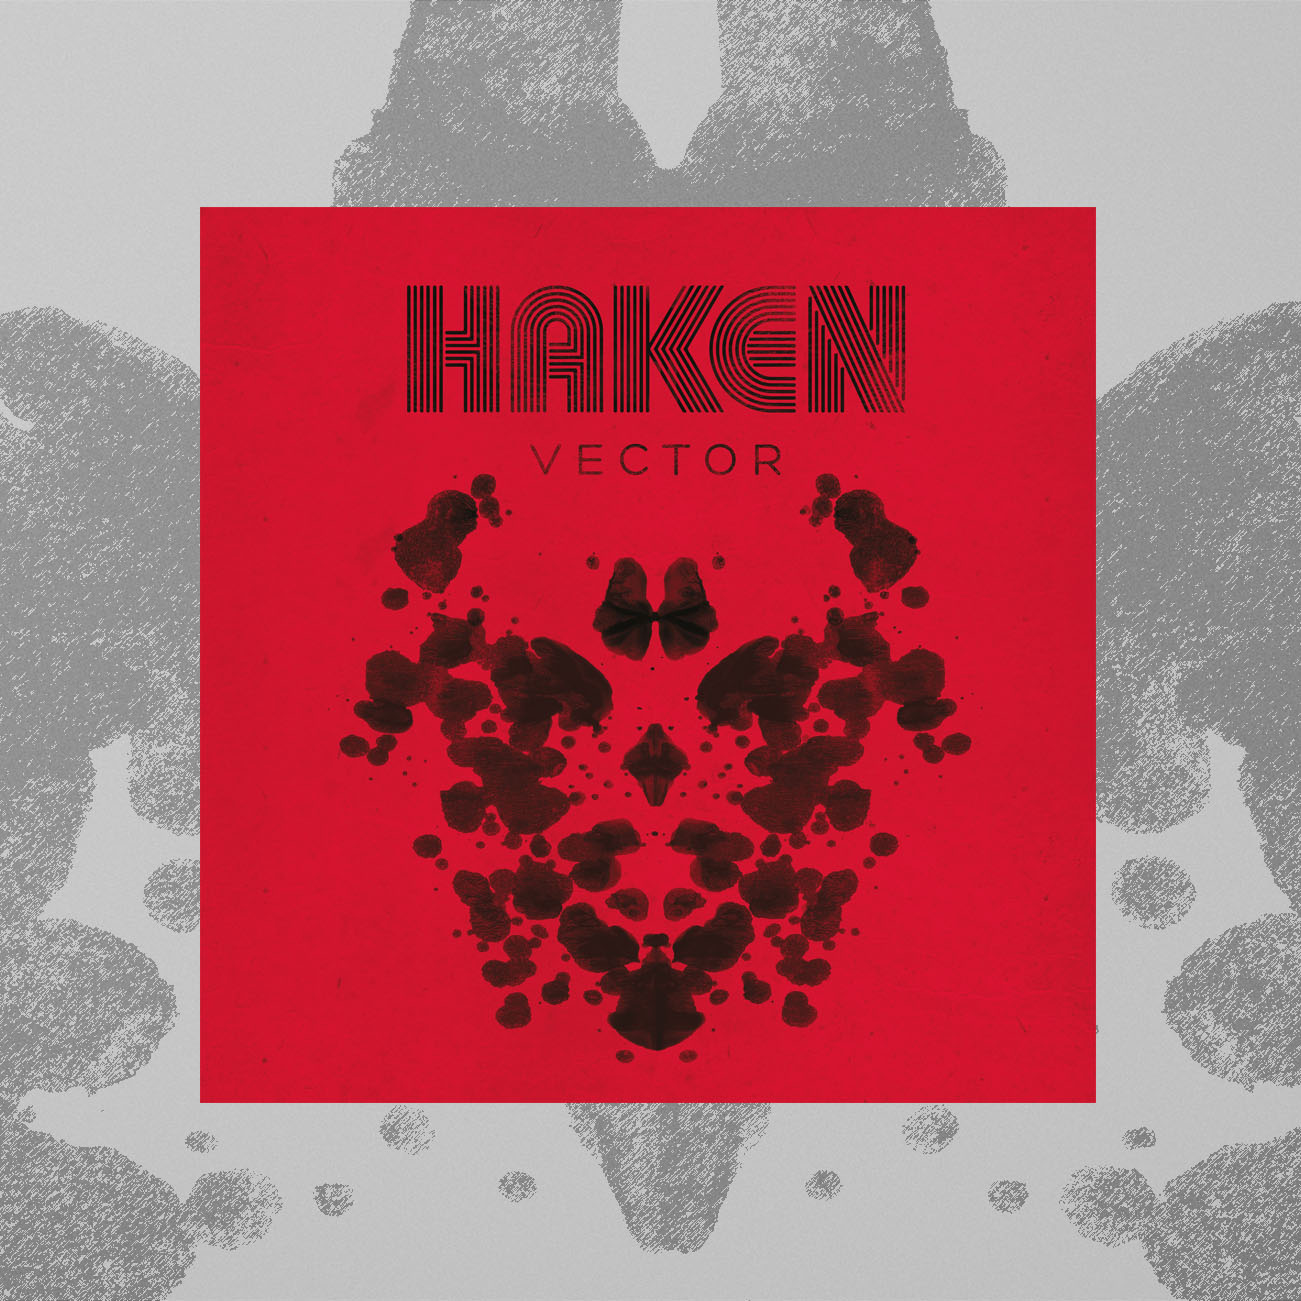 Haken - 'Vector' Ltd. 2CD Mediabook - Haken